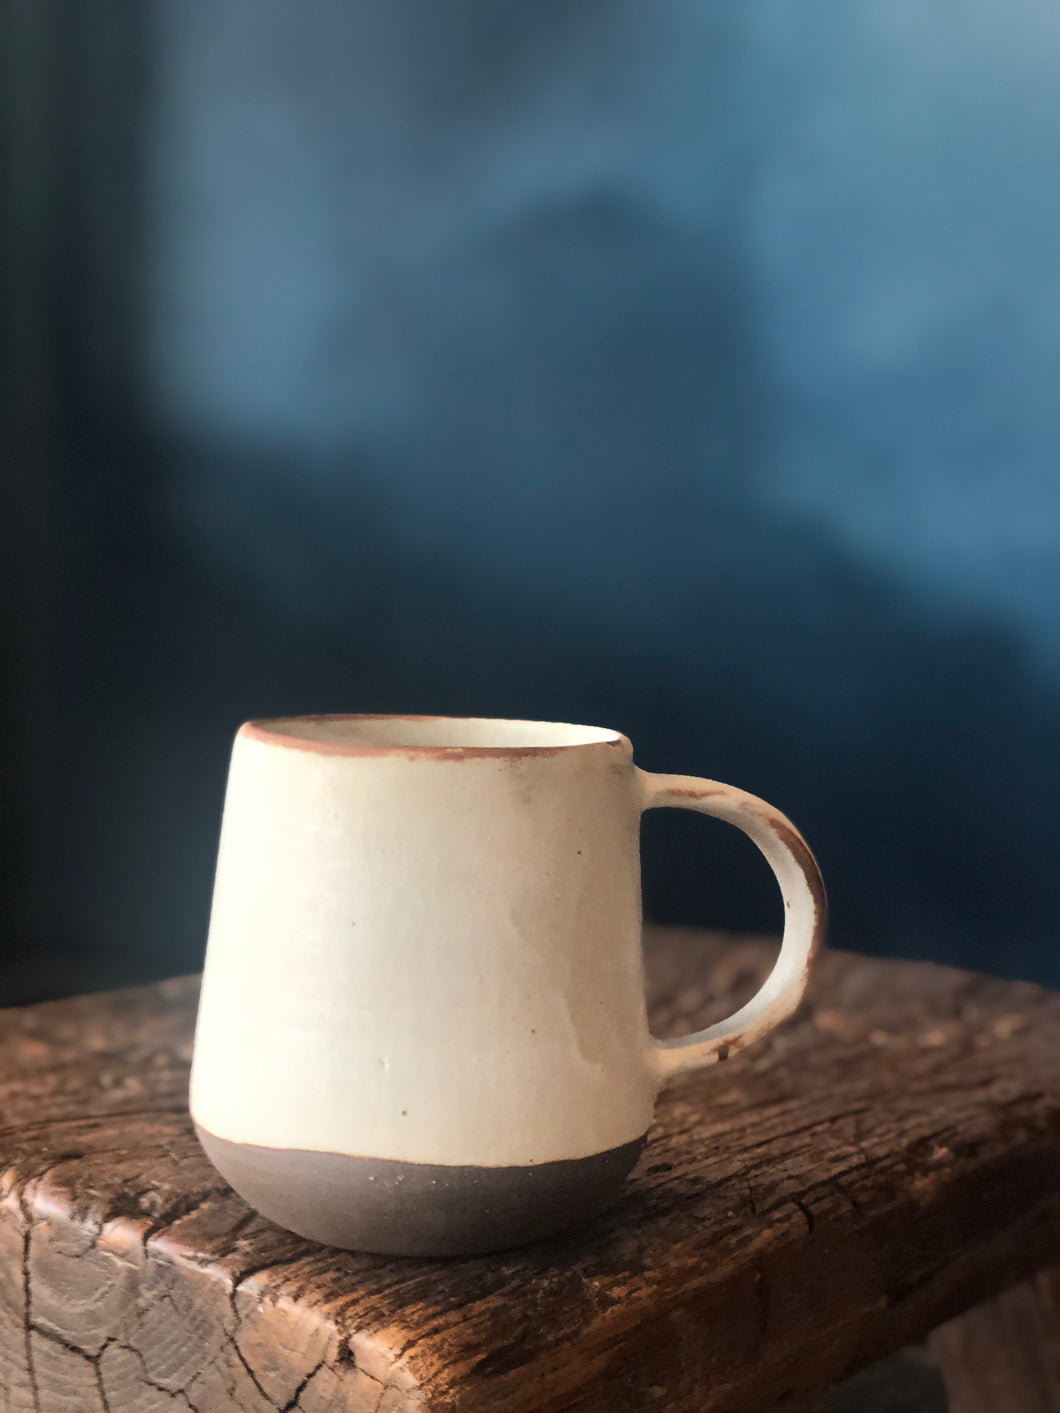 Coffee Mug Antique White, Brown at bottom, Semi-Glazed, Handmade pottery